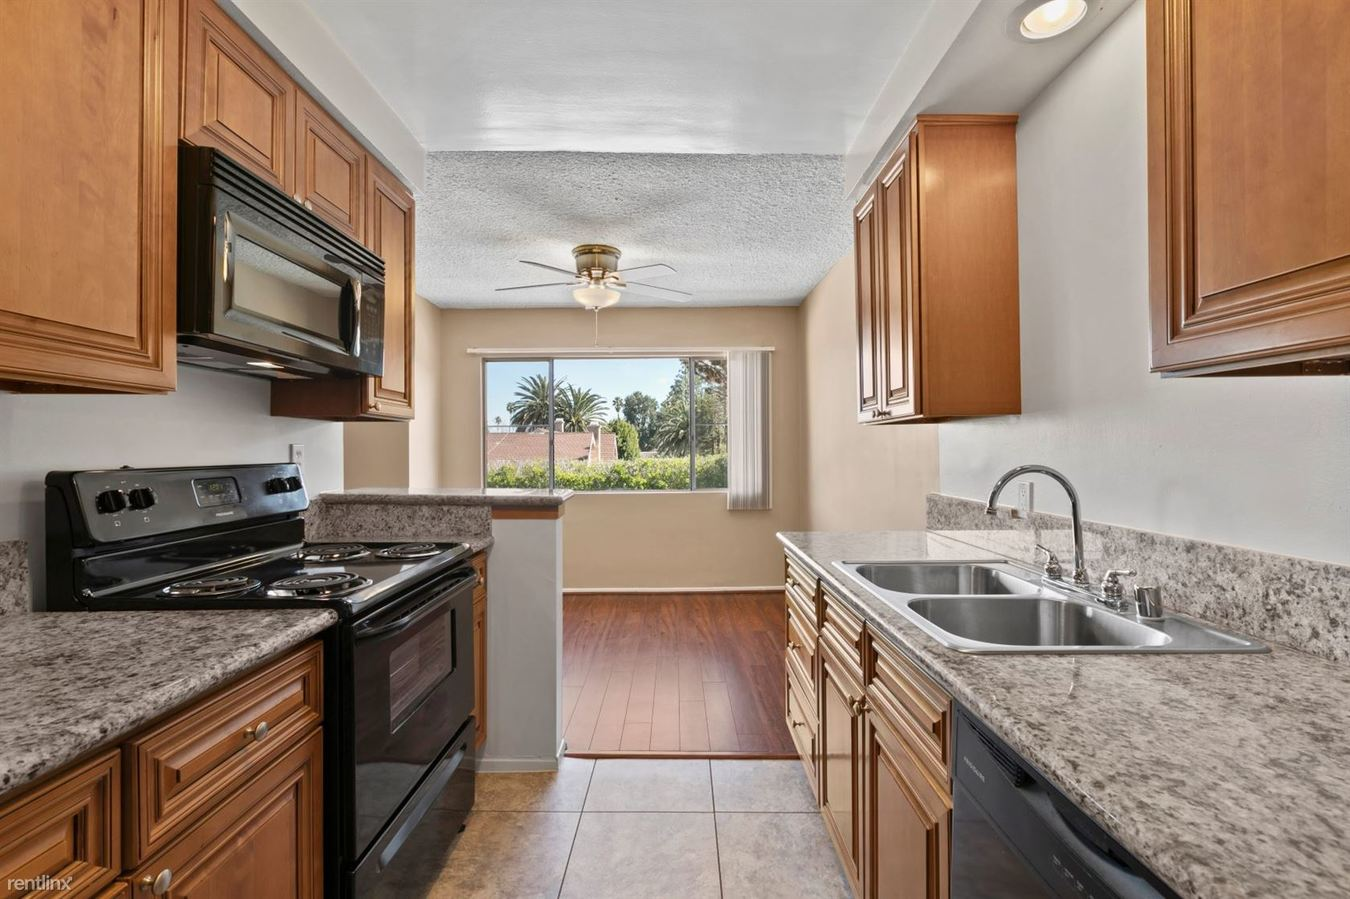 2 Bedrooms 2 Bathrooms Apartment for rent at White Oak Terrace in Encino, CA